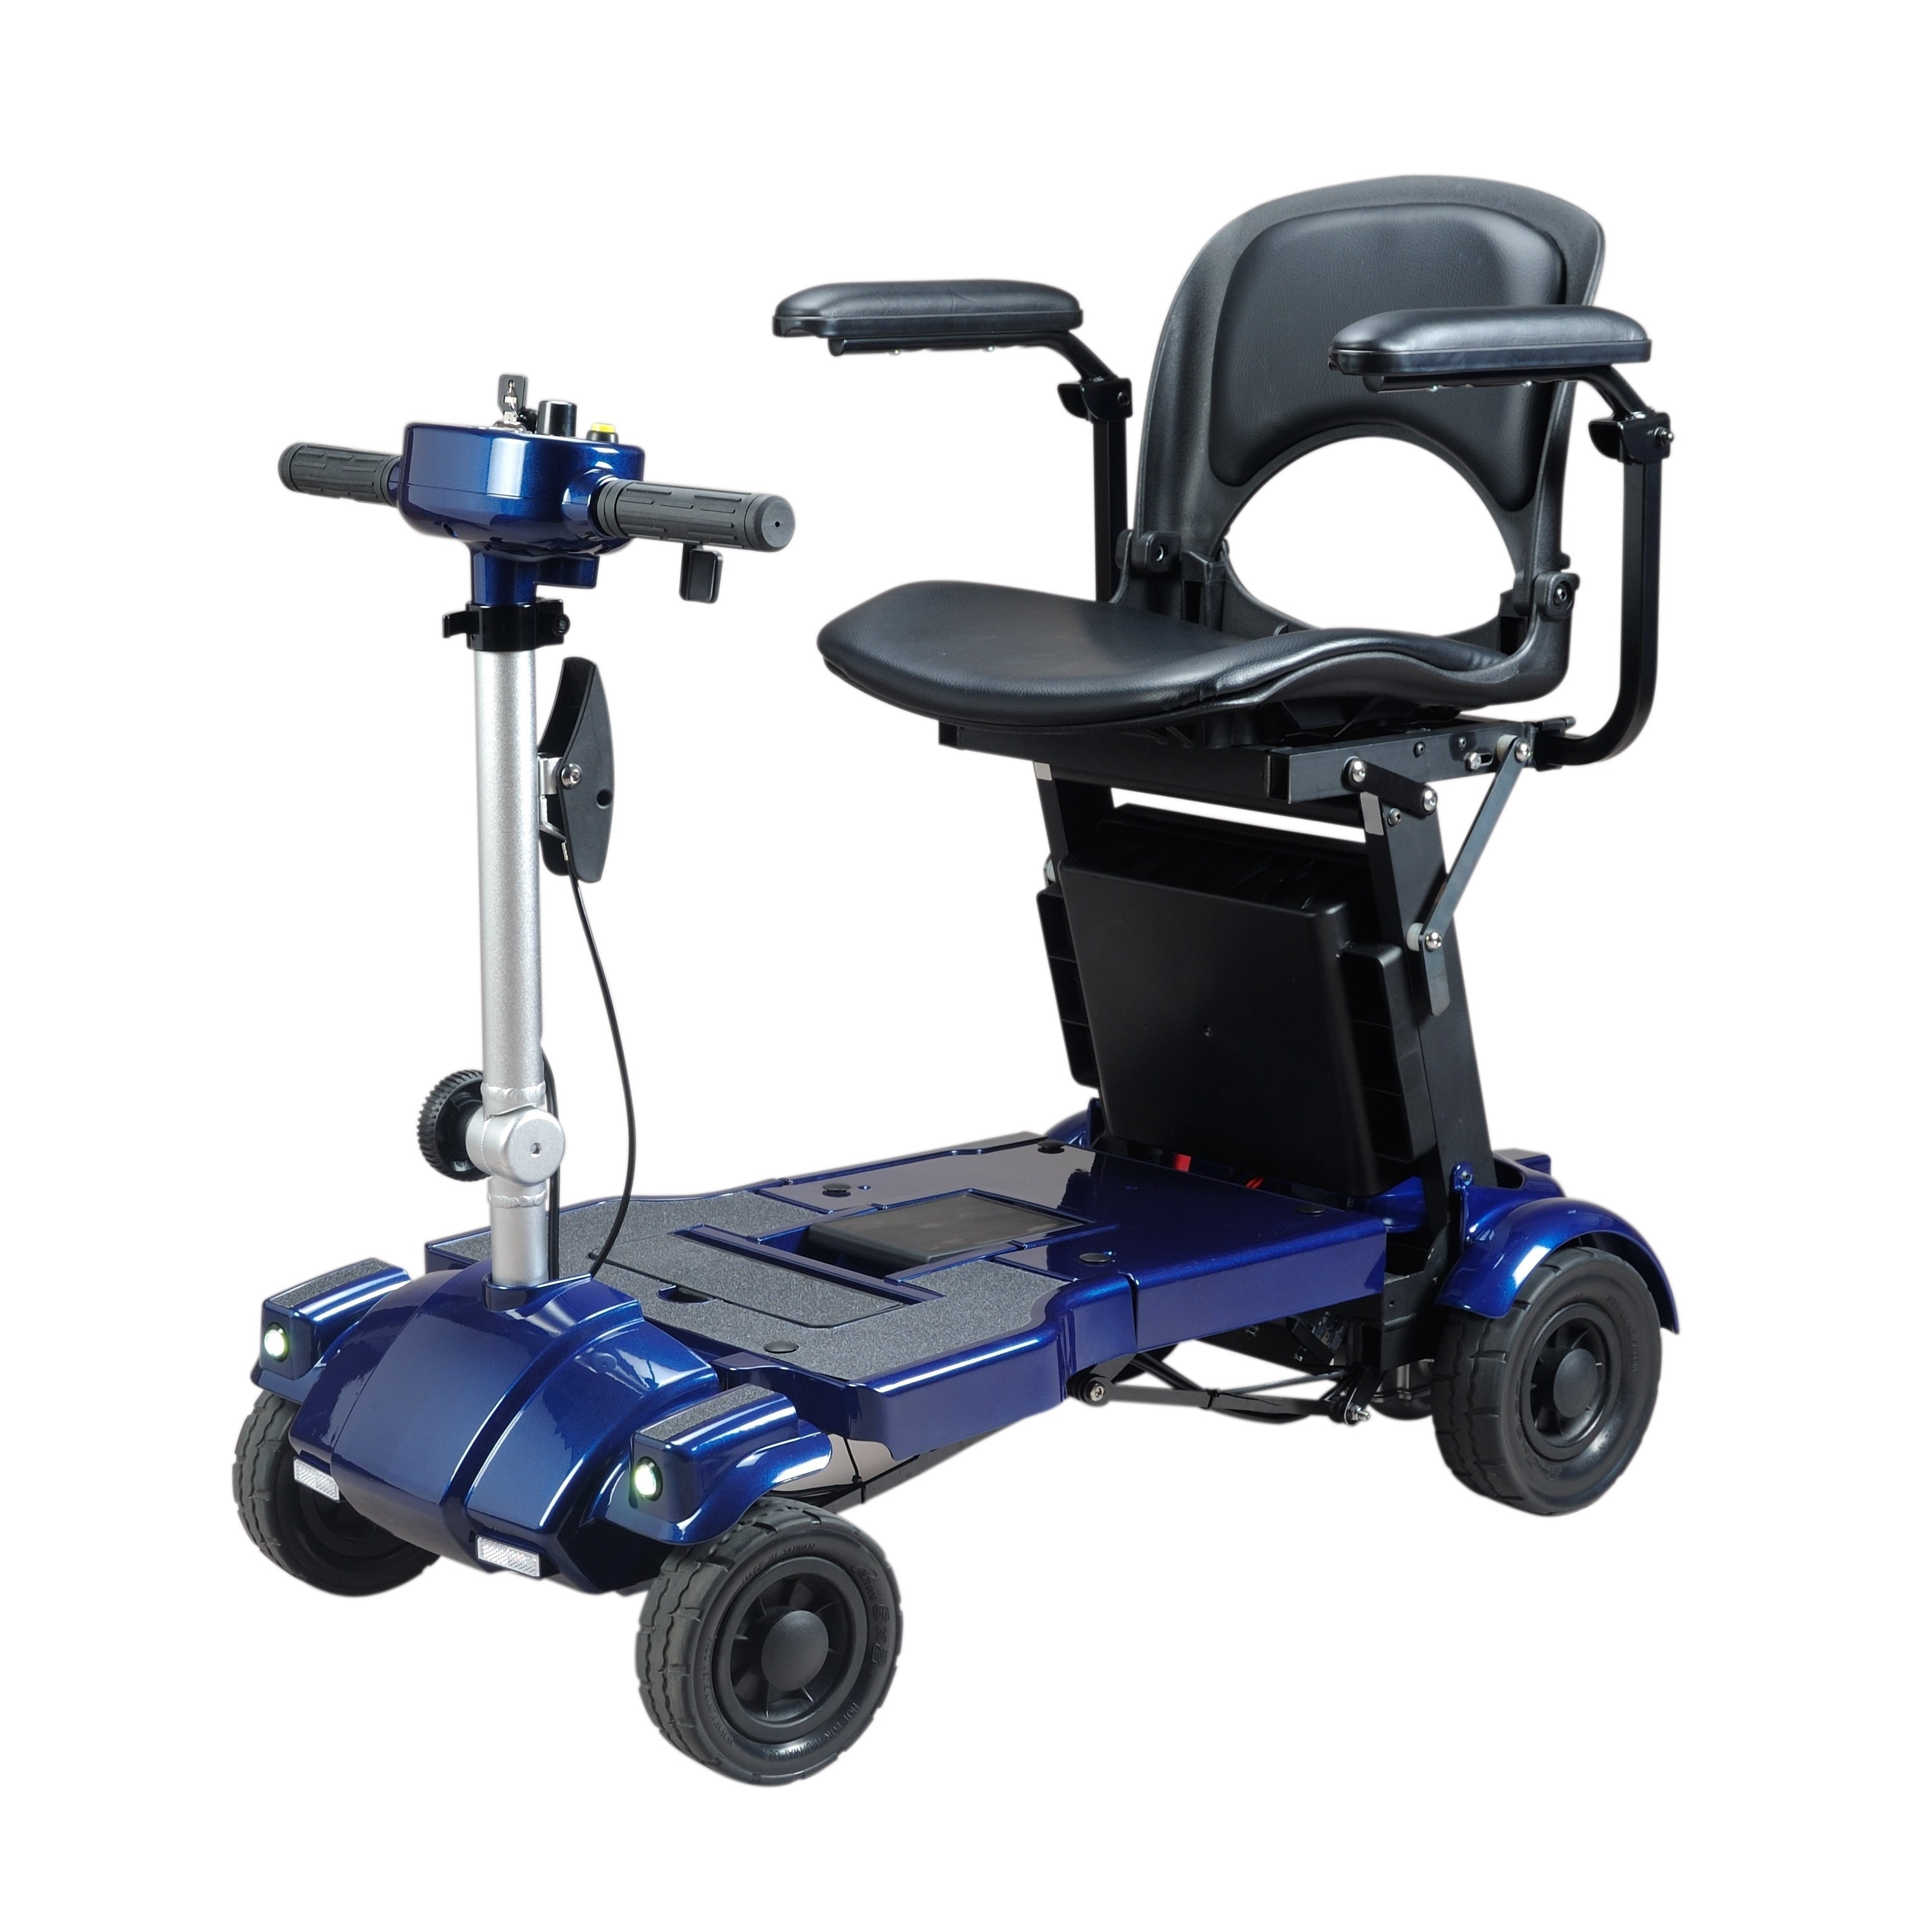 USA iLIVING i3 Foldable Electric Mobility Scooter (Blue)